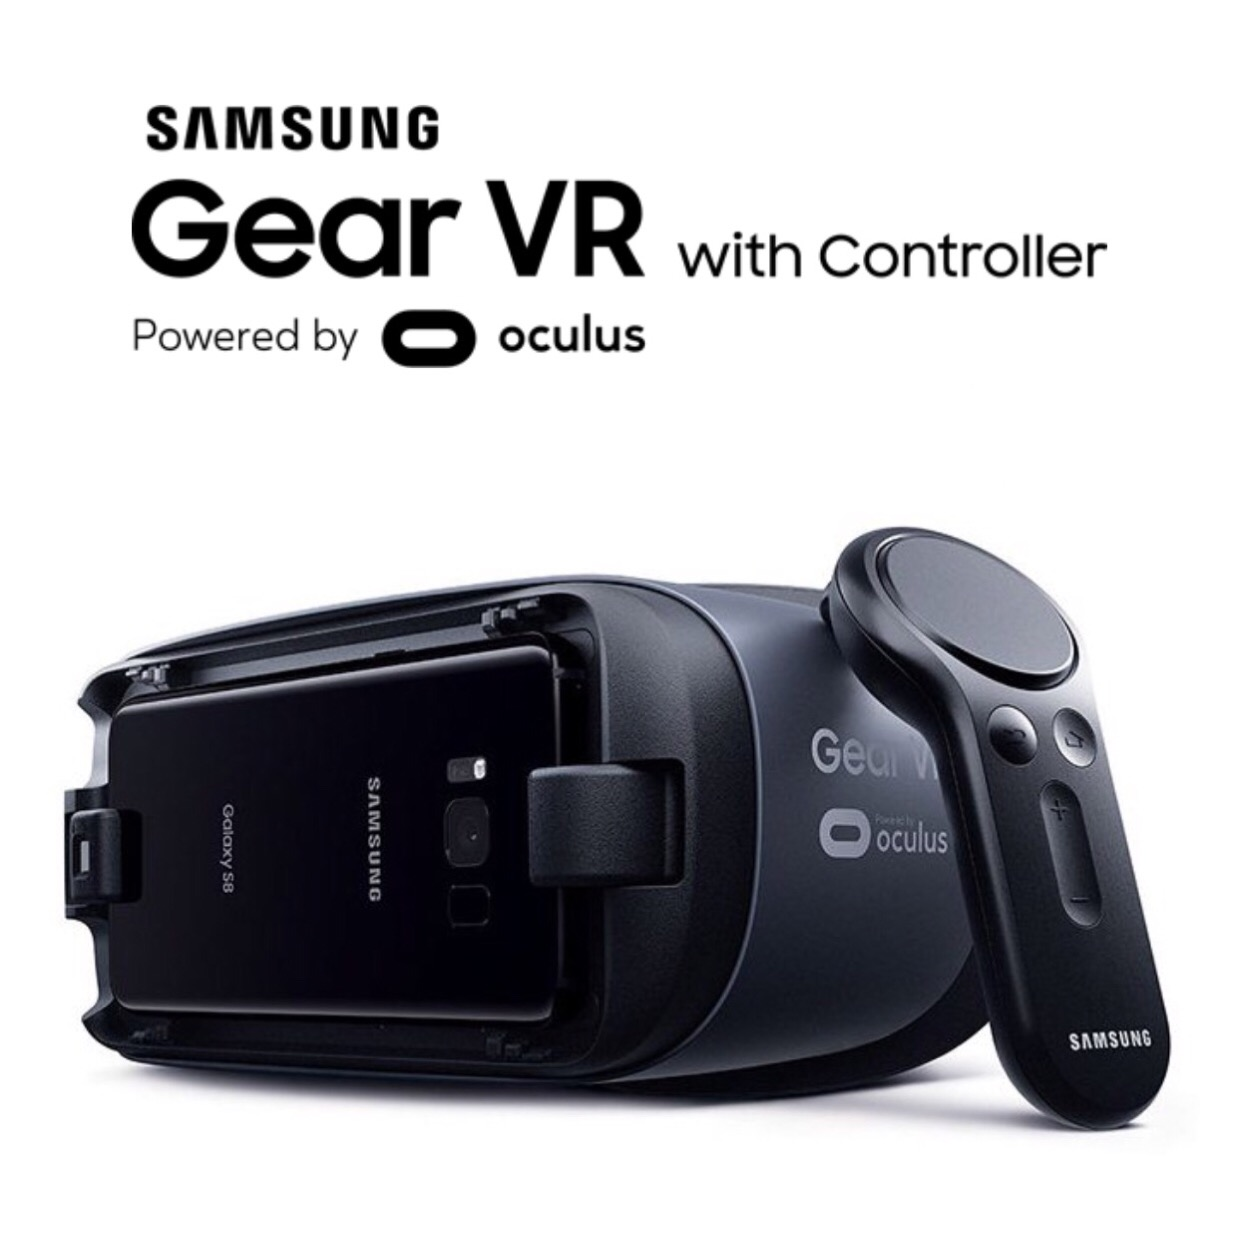 Samsung gear vr sm r324 2017 oculus glasses with remote for Distribuidores samsung